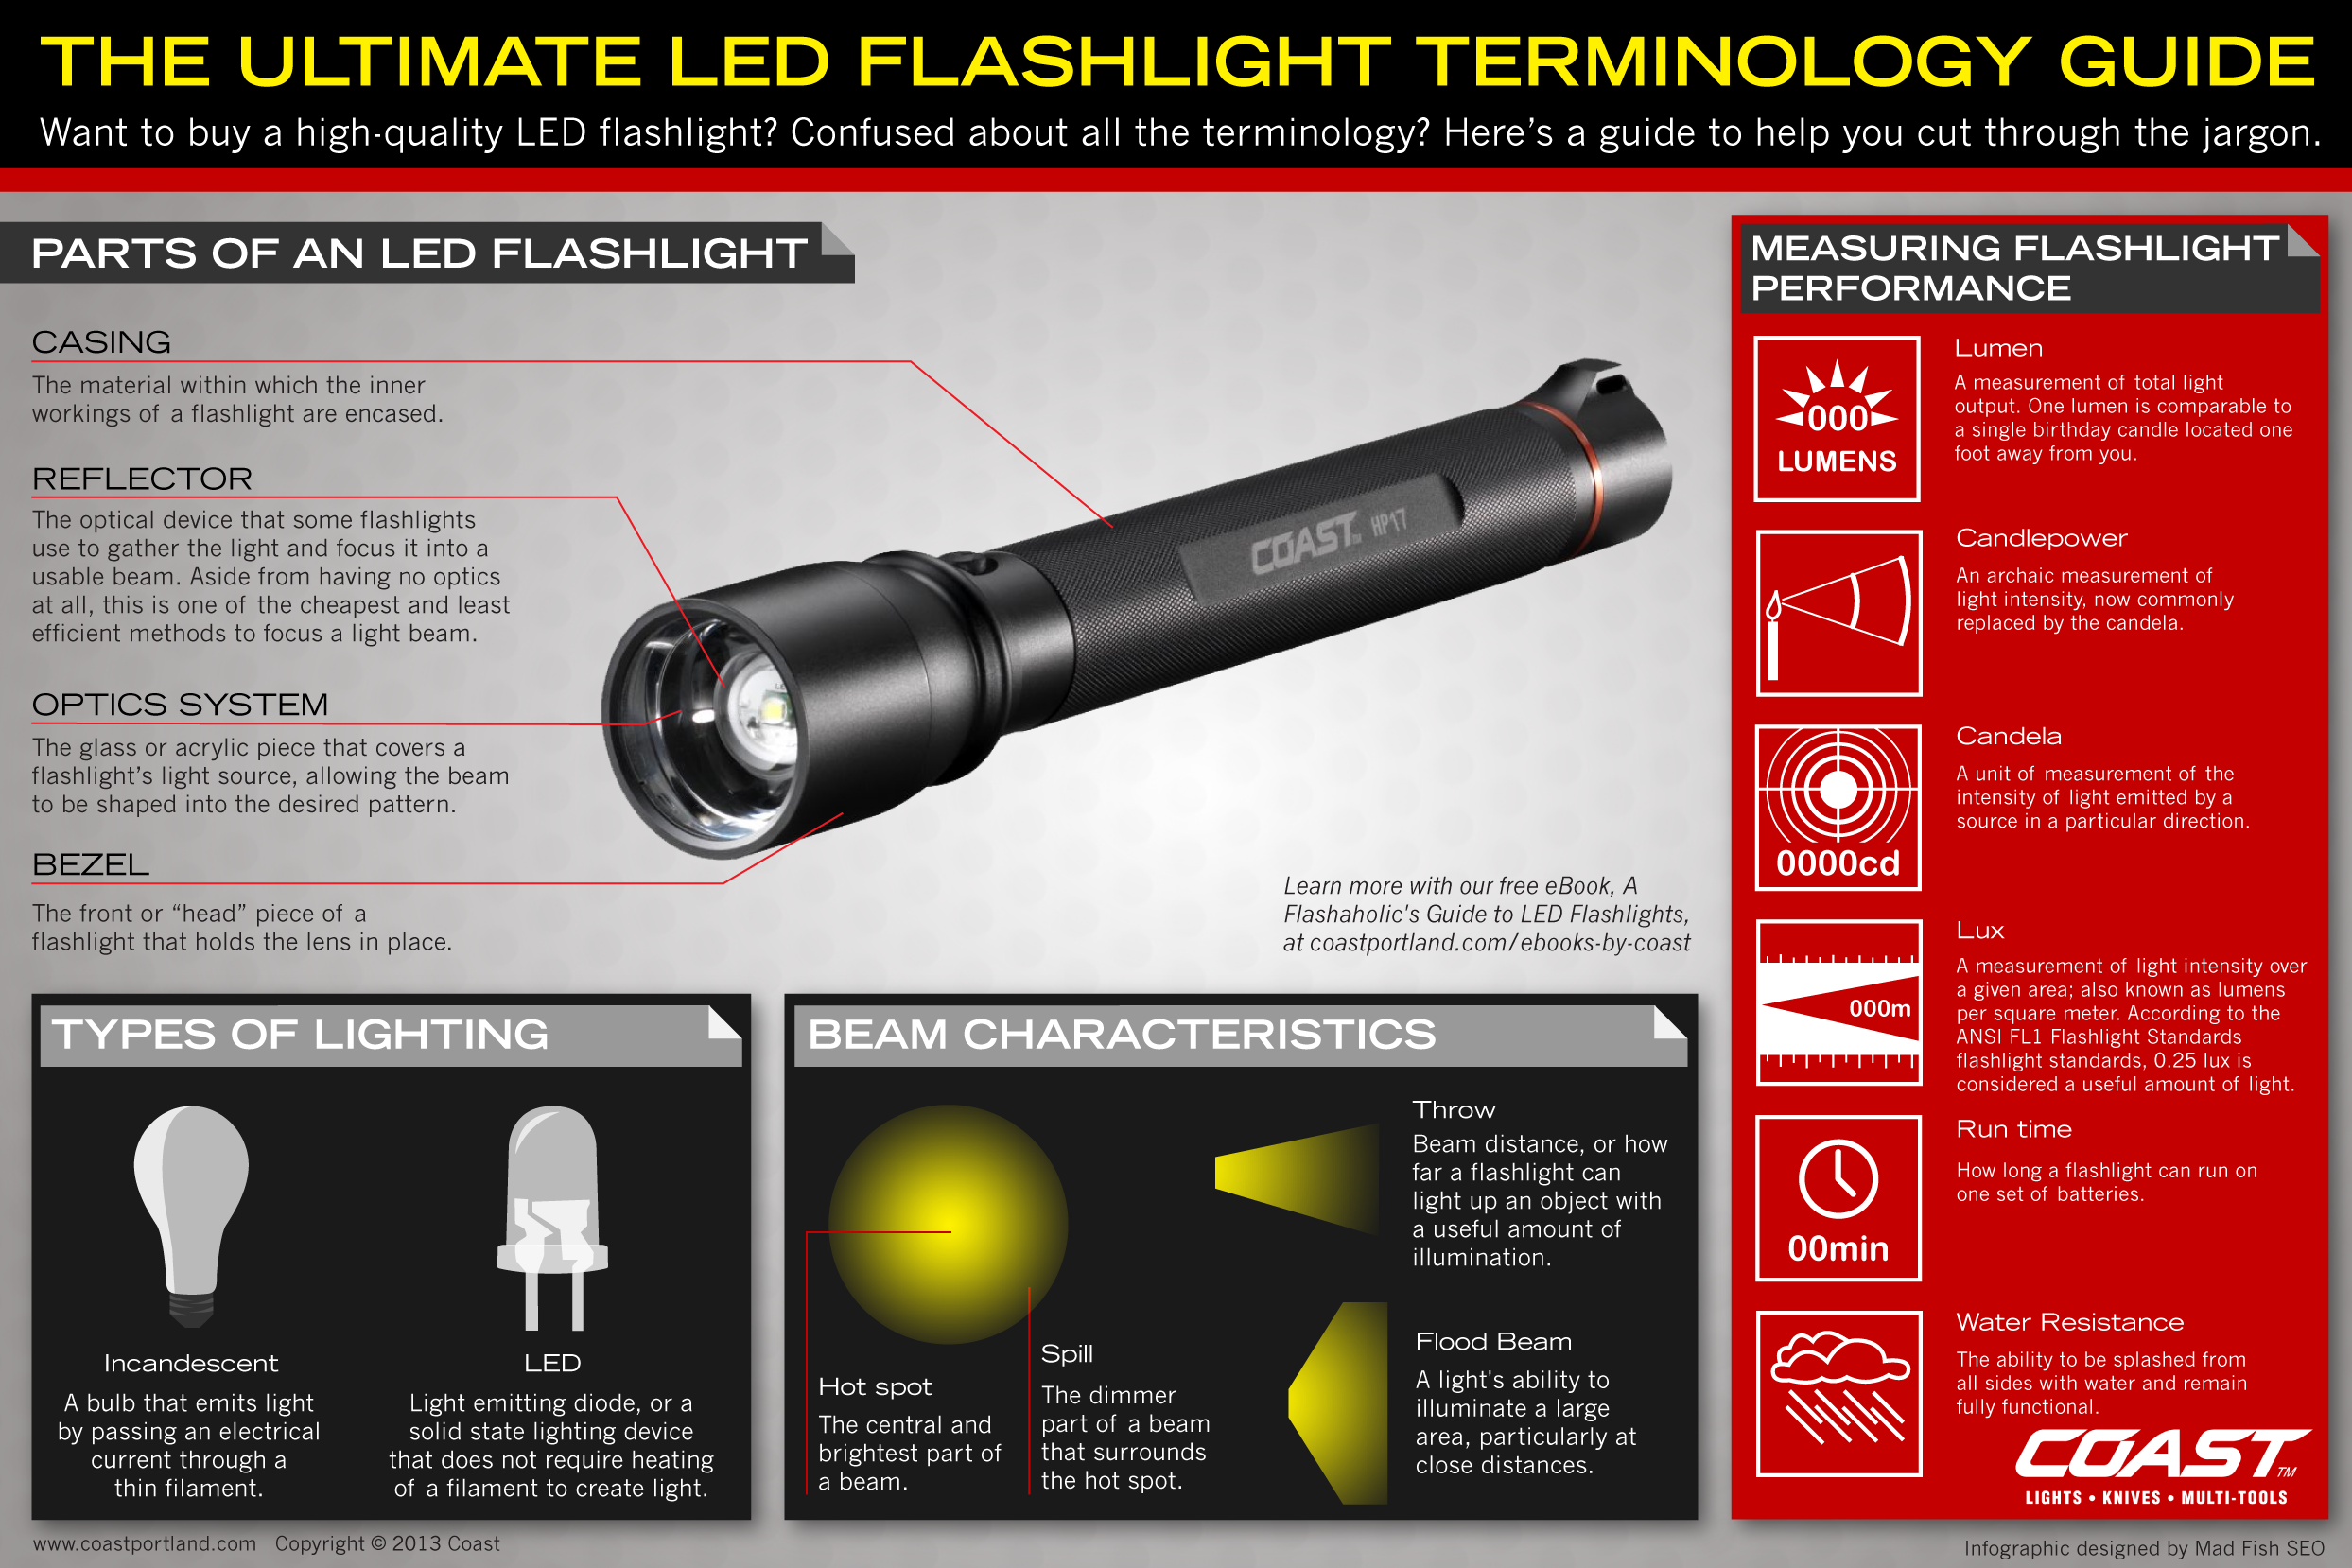 The Ultimate LED Flashlight Terminology Guide